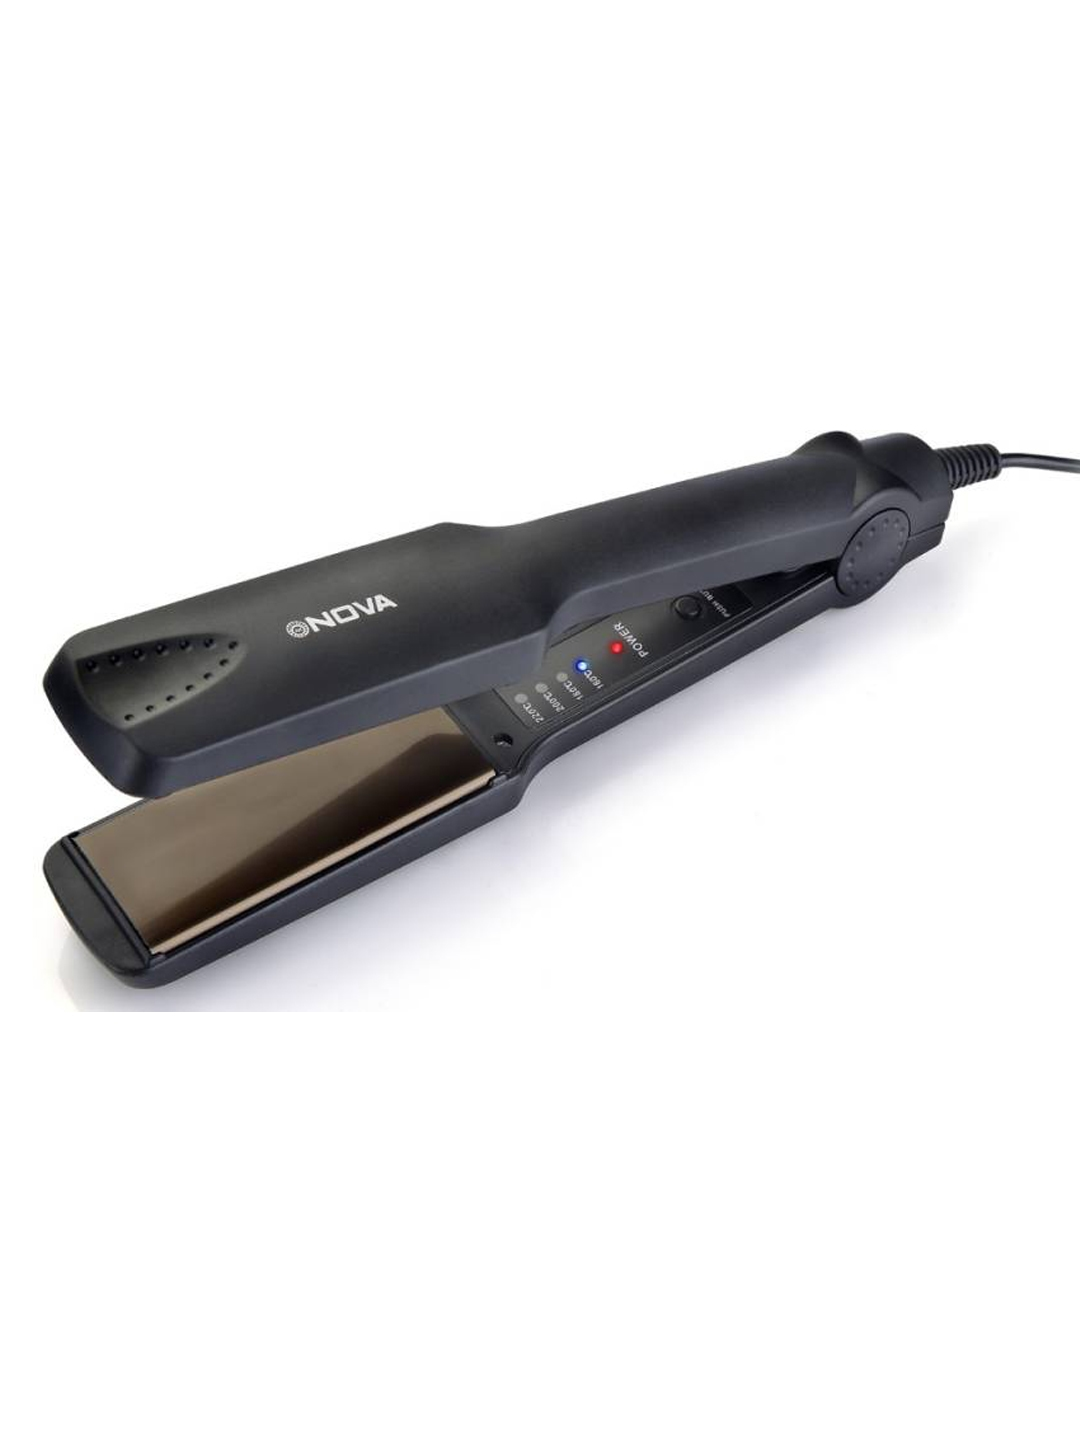 Nova Temperature Control Professional NHS 860 Hair Straightener